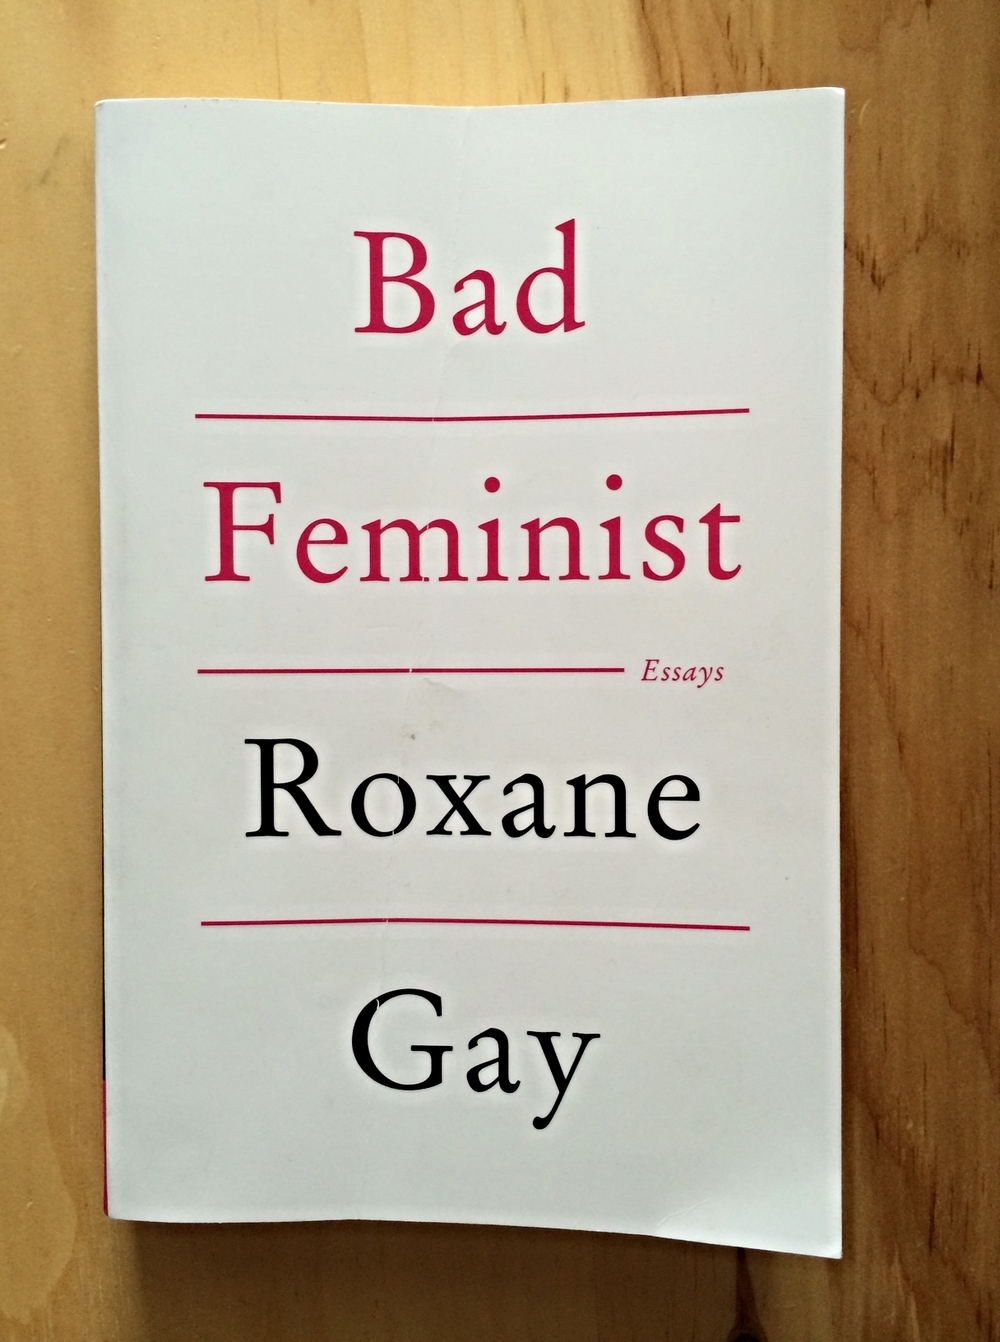 Bad Feminist - Roxane Gay